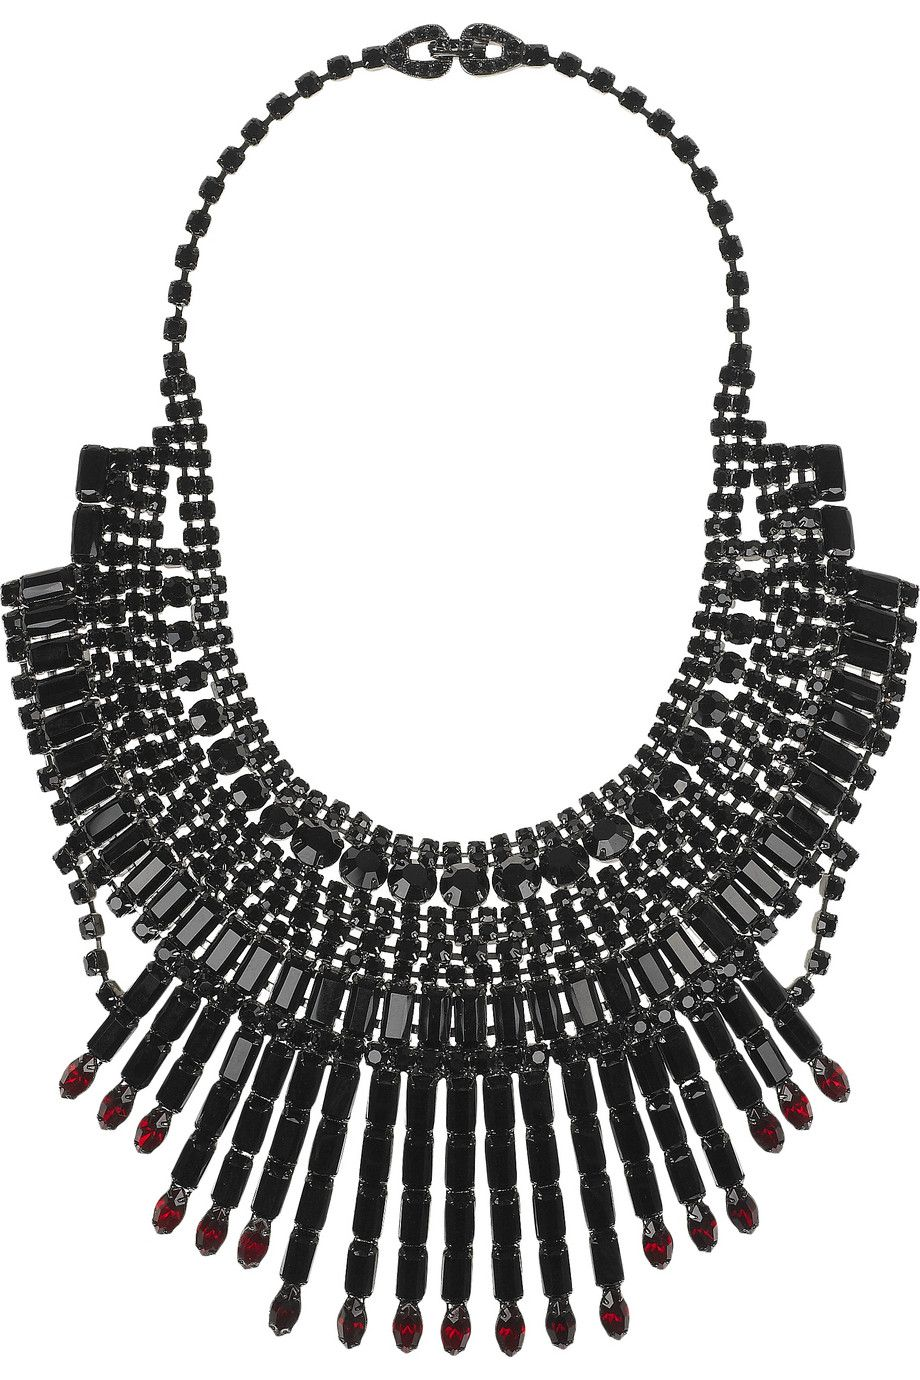 Tom Binns Crystal Bib Necklace, £1,690